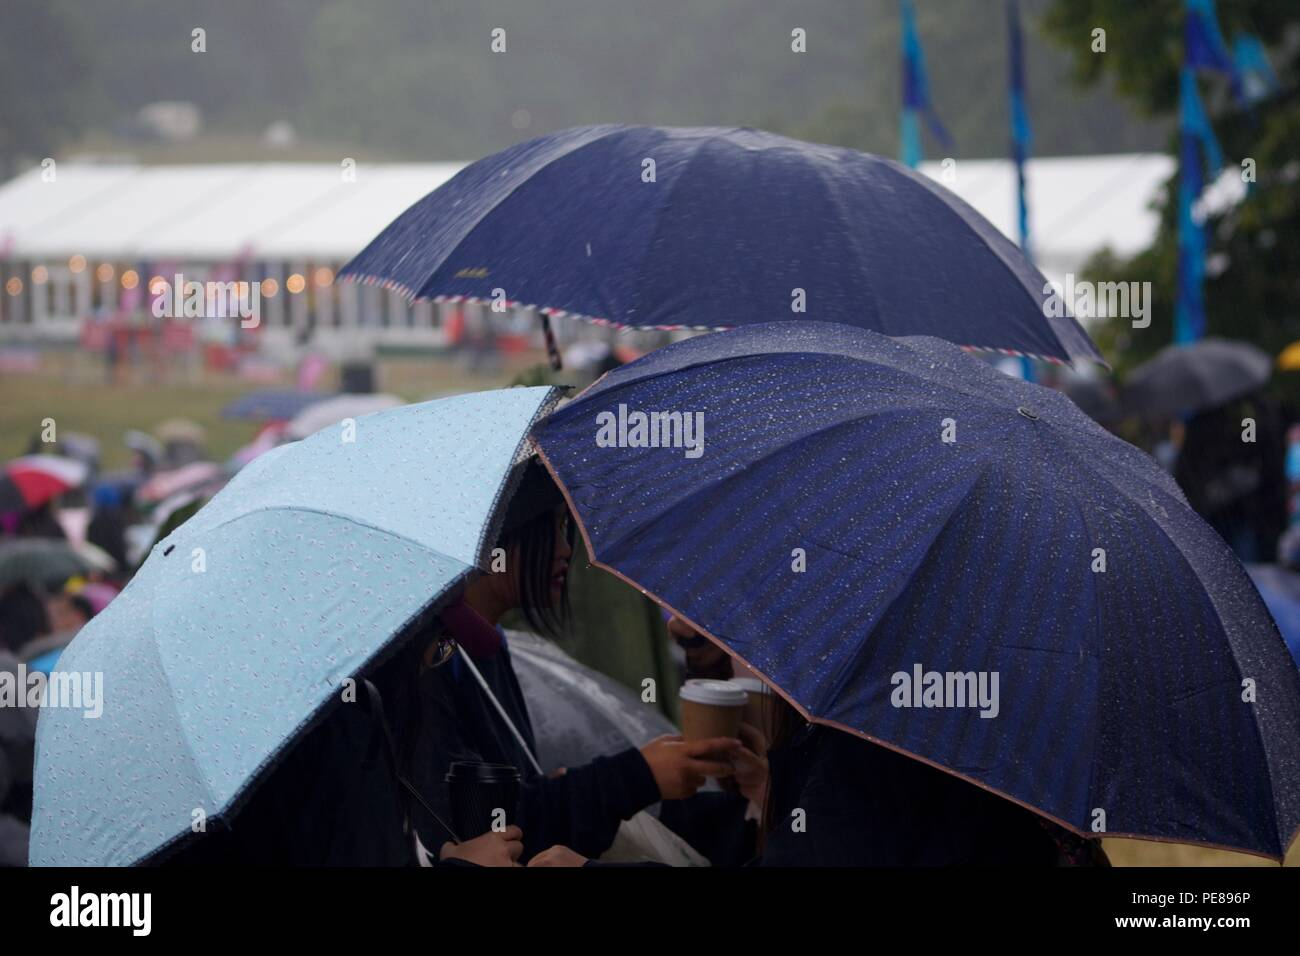 Trio of Blue Umbrella's Sheltering a Huddle of Friends at Bristol Balloon Fiesta on a Rainy Summer's Day. UK. 2018. - Stock Image